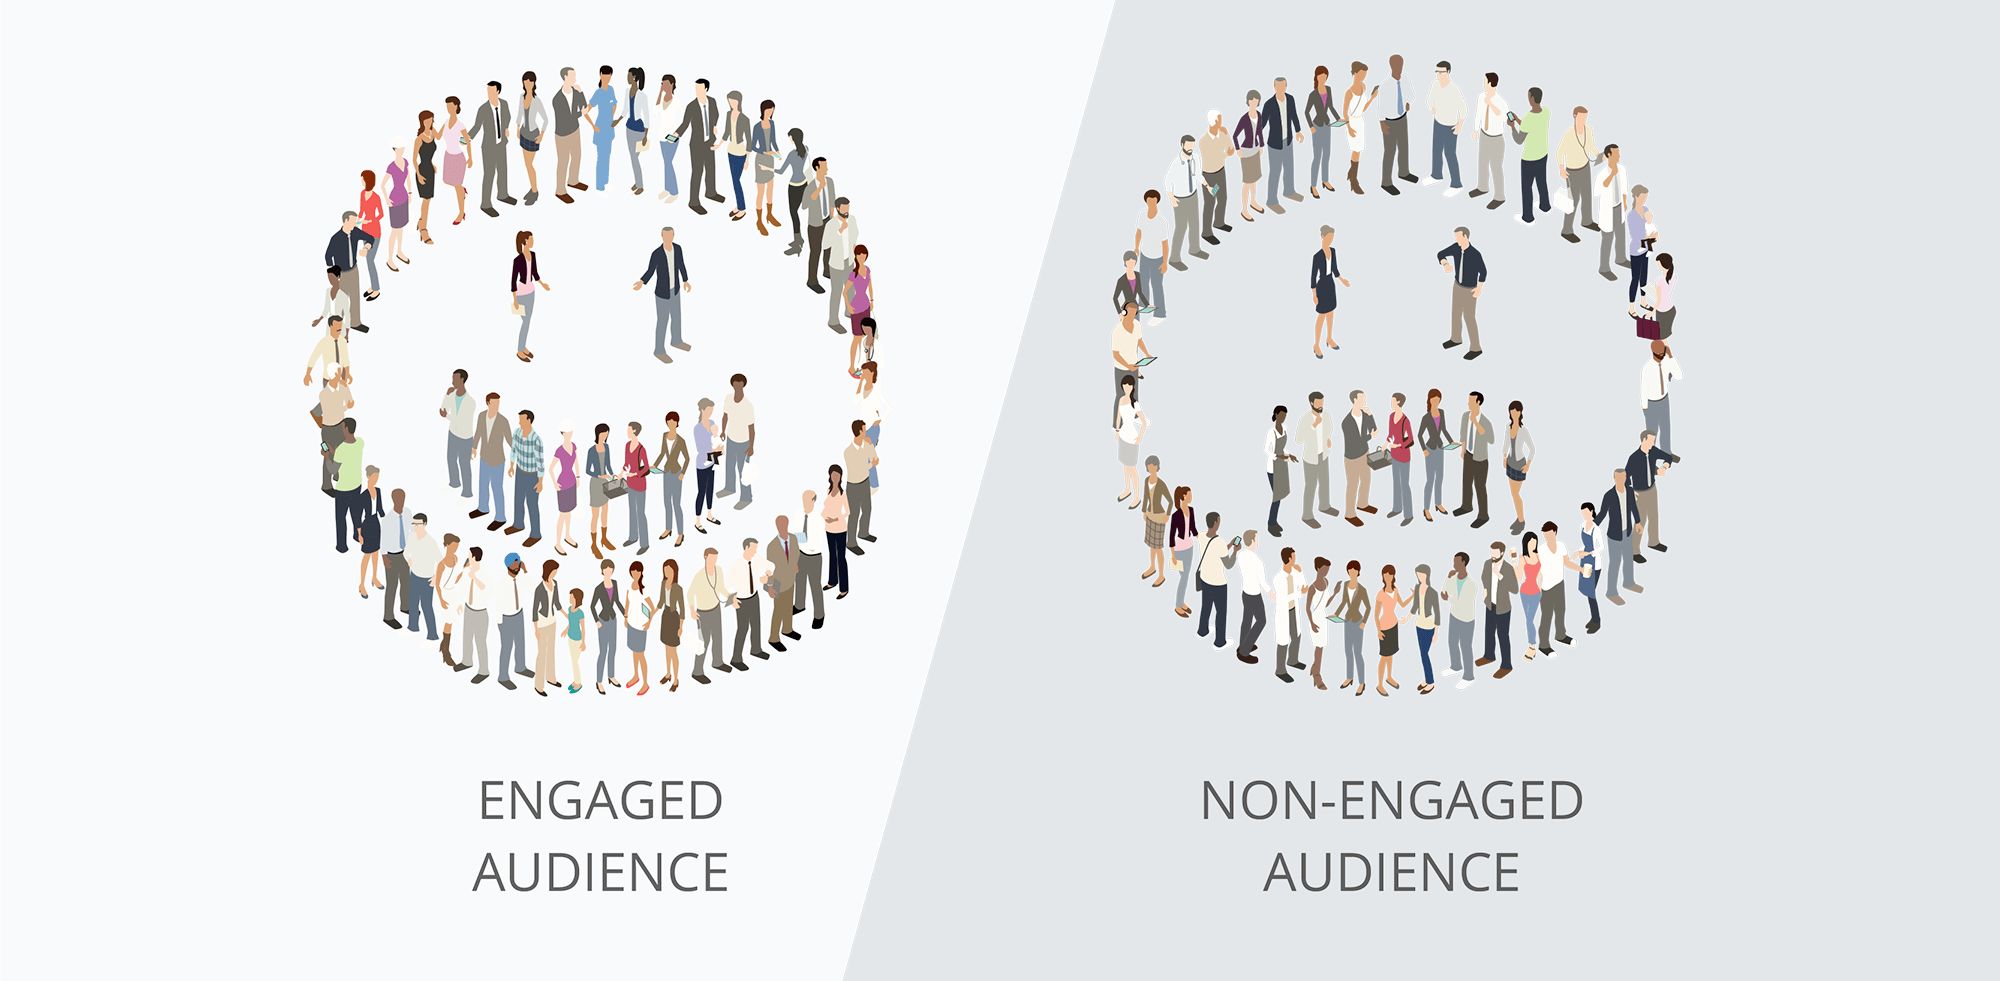 Engaged audience vs non-engaged audience